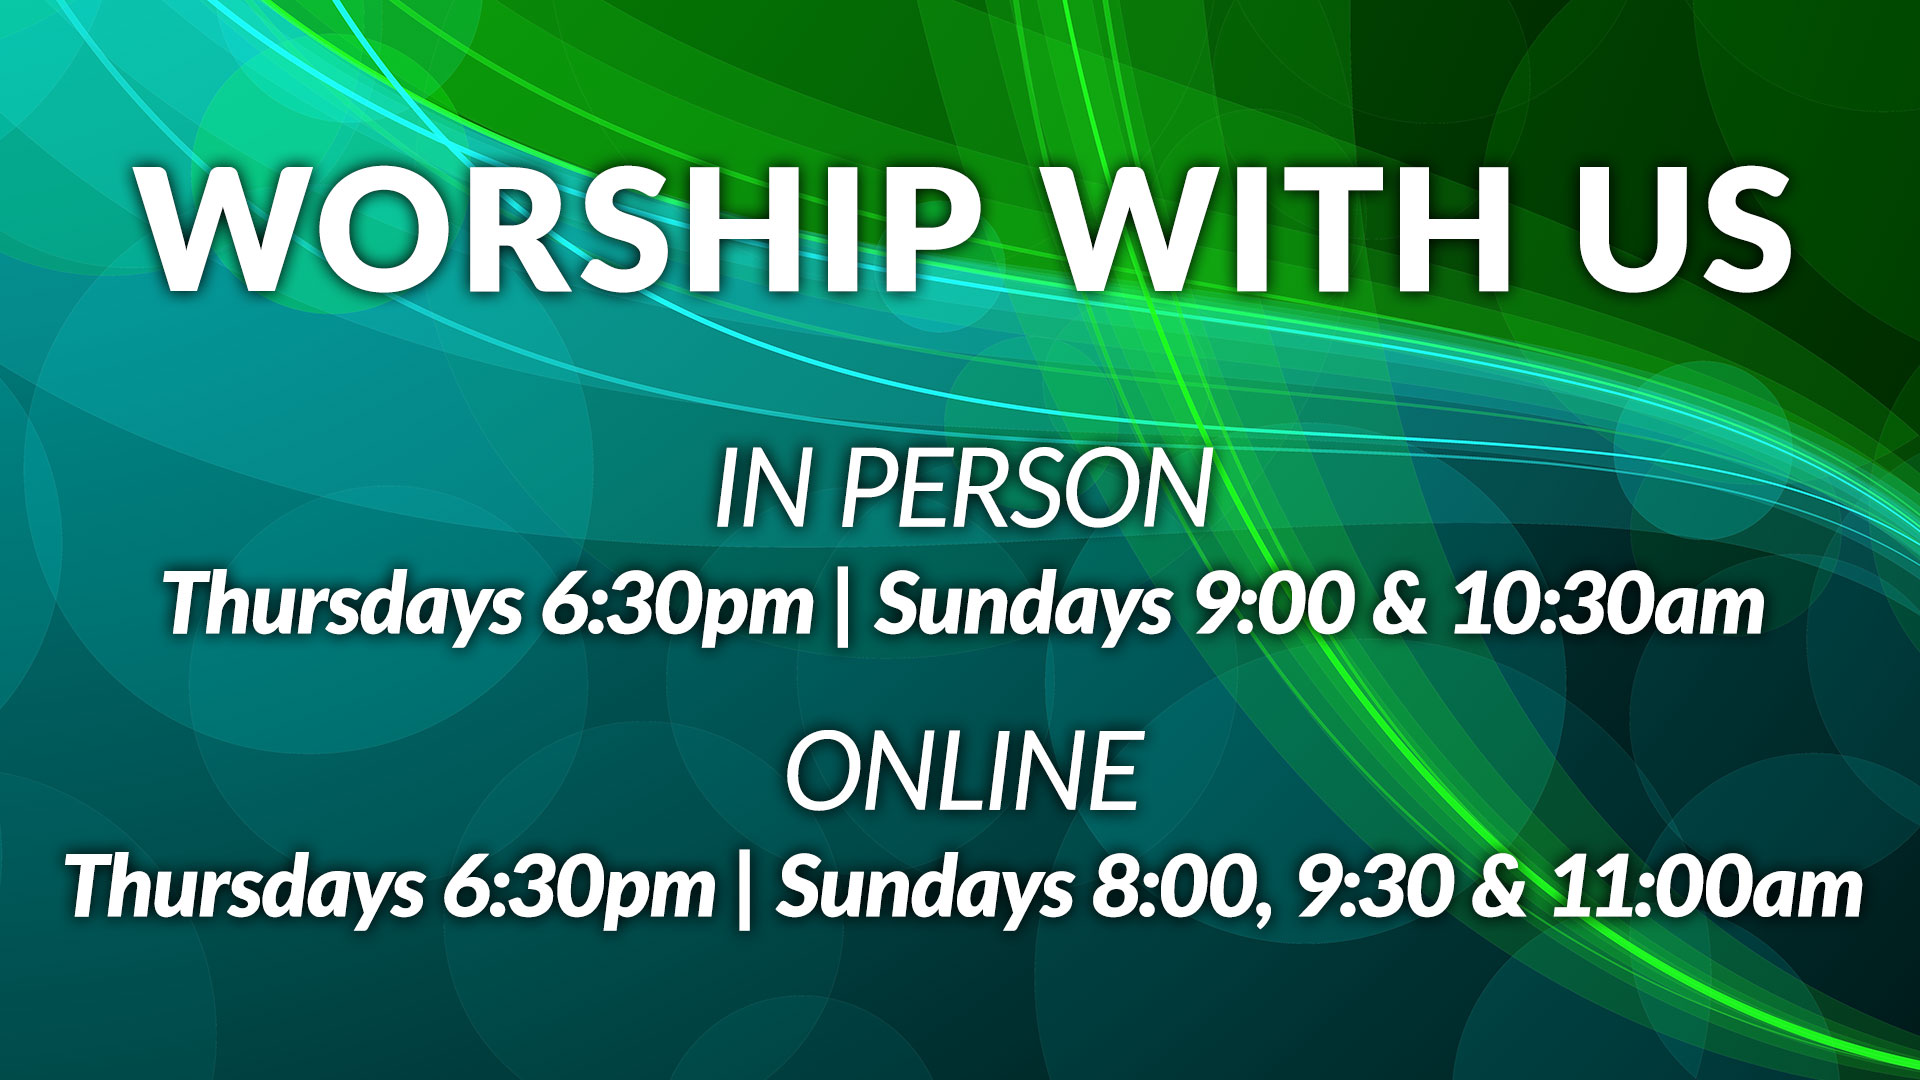 Worship with Us - Online and In-Person